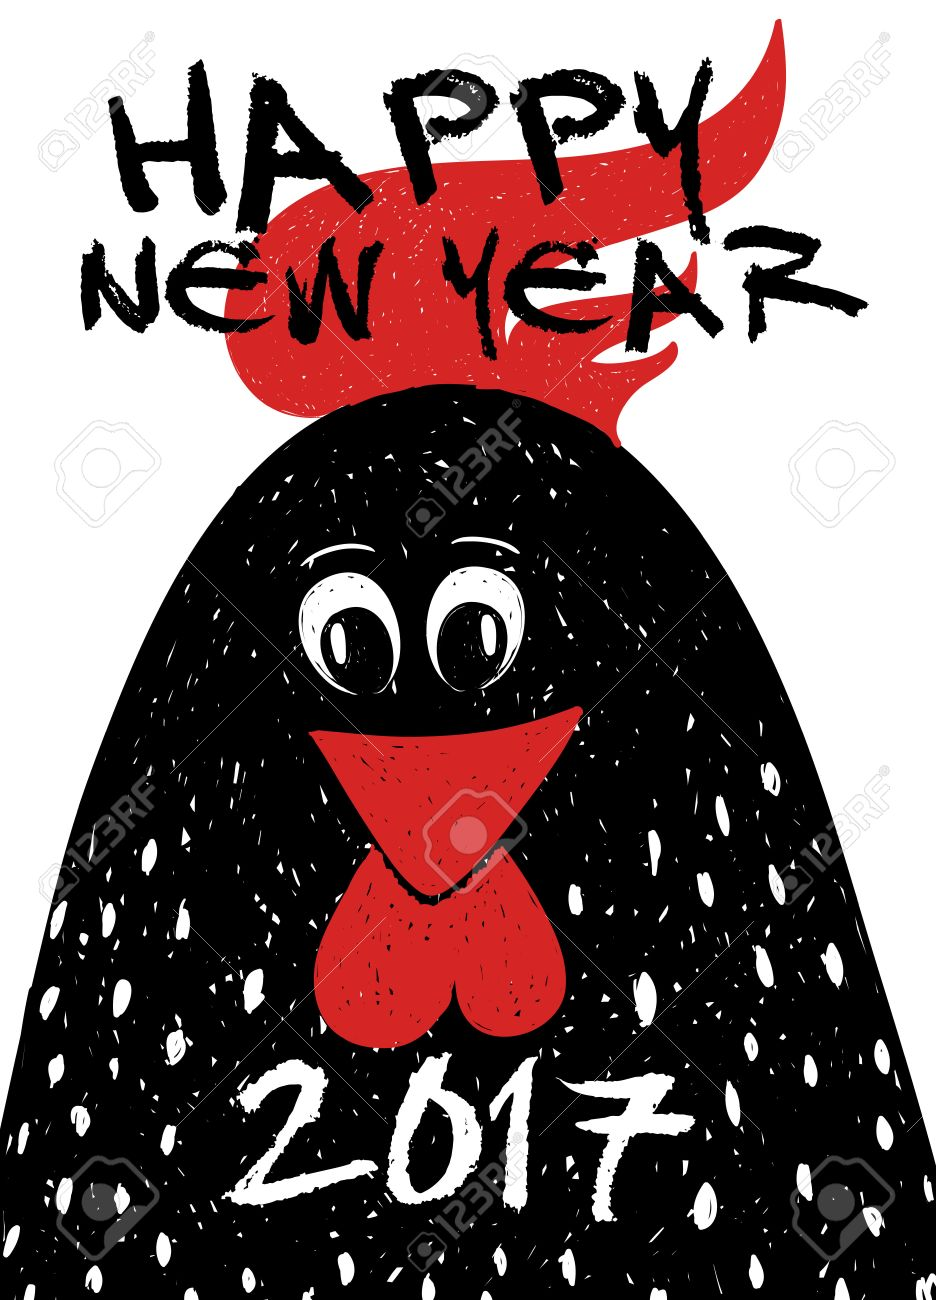 New year 2017 greeting pictures year of rooster happy chinese new year - Happy New Year Greeting Card Typography Poster With Funny Black Rooster Symbol Of The